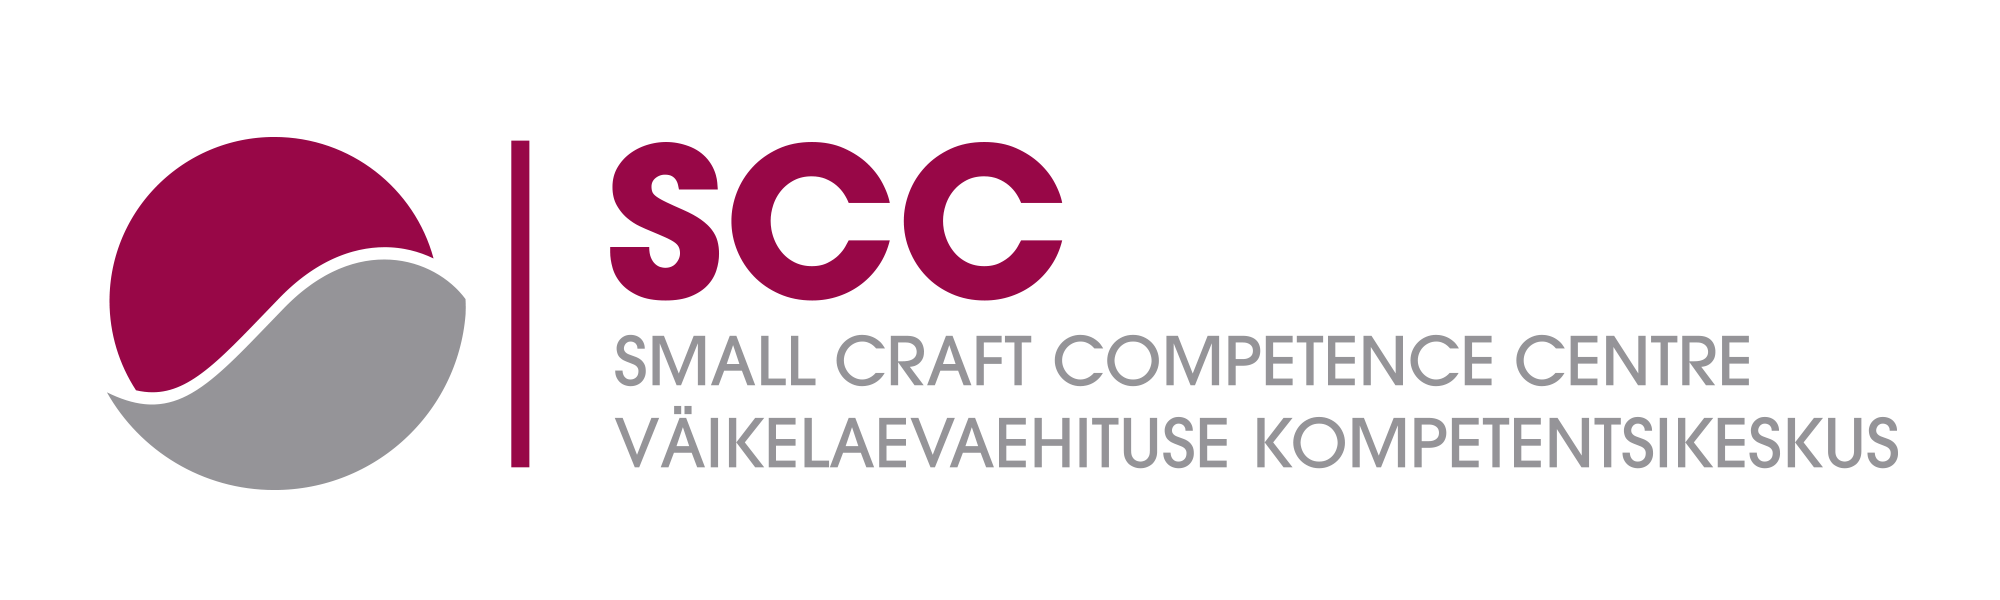 Small Craft Competence Centre